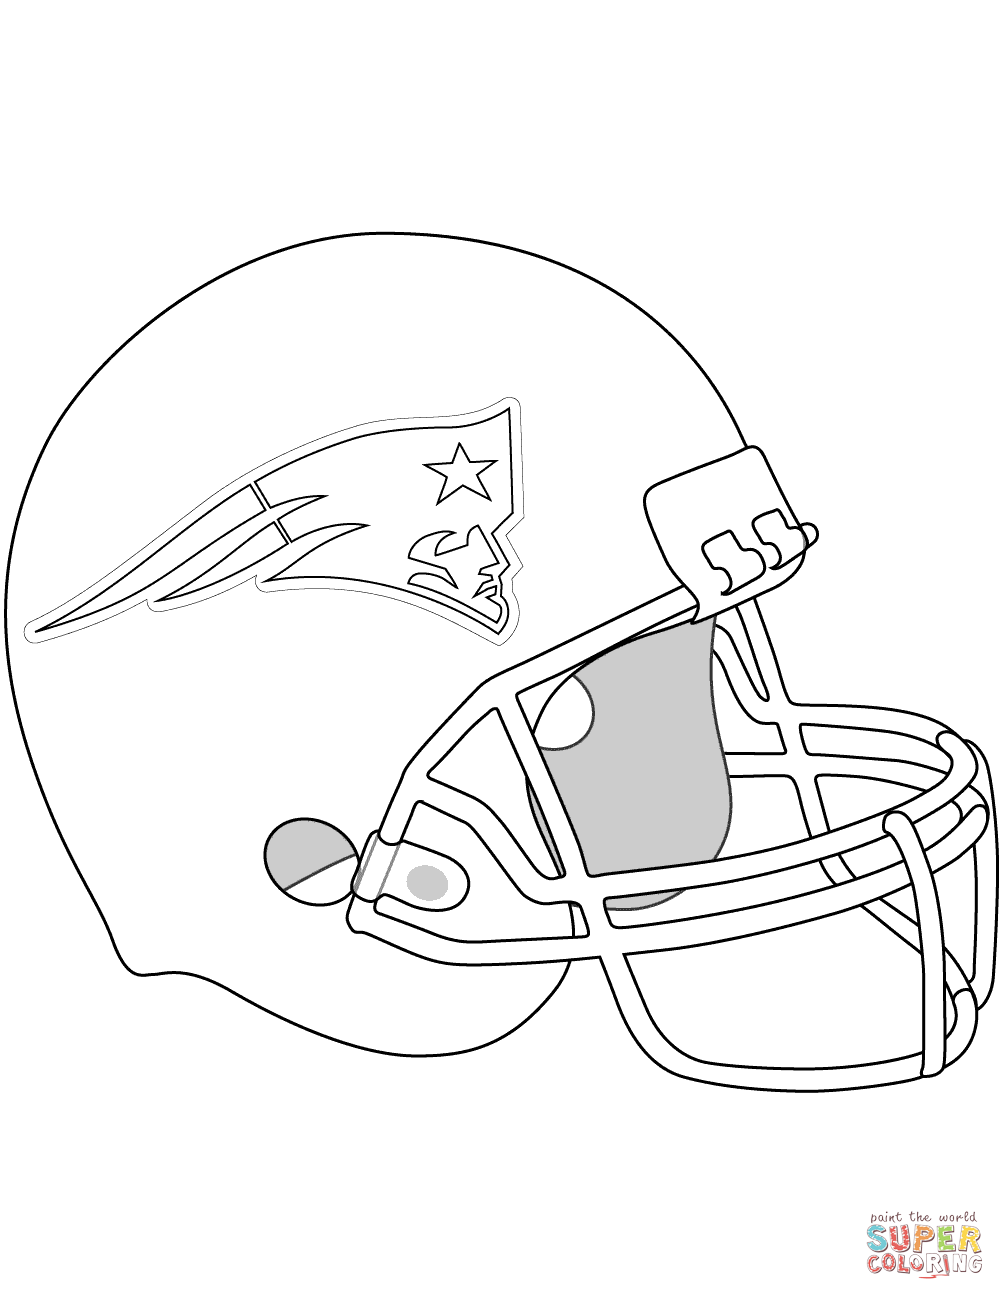 New England Patriots Helmet Coloring Page From Nfl Category Select From 28148 Printab Football Coloring Pages New England Patriots Helmet New England Patriots